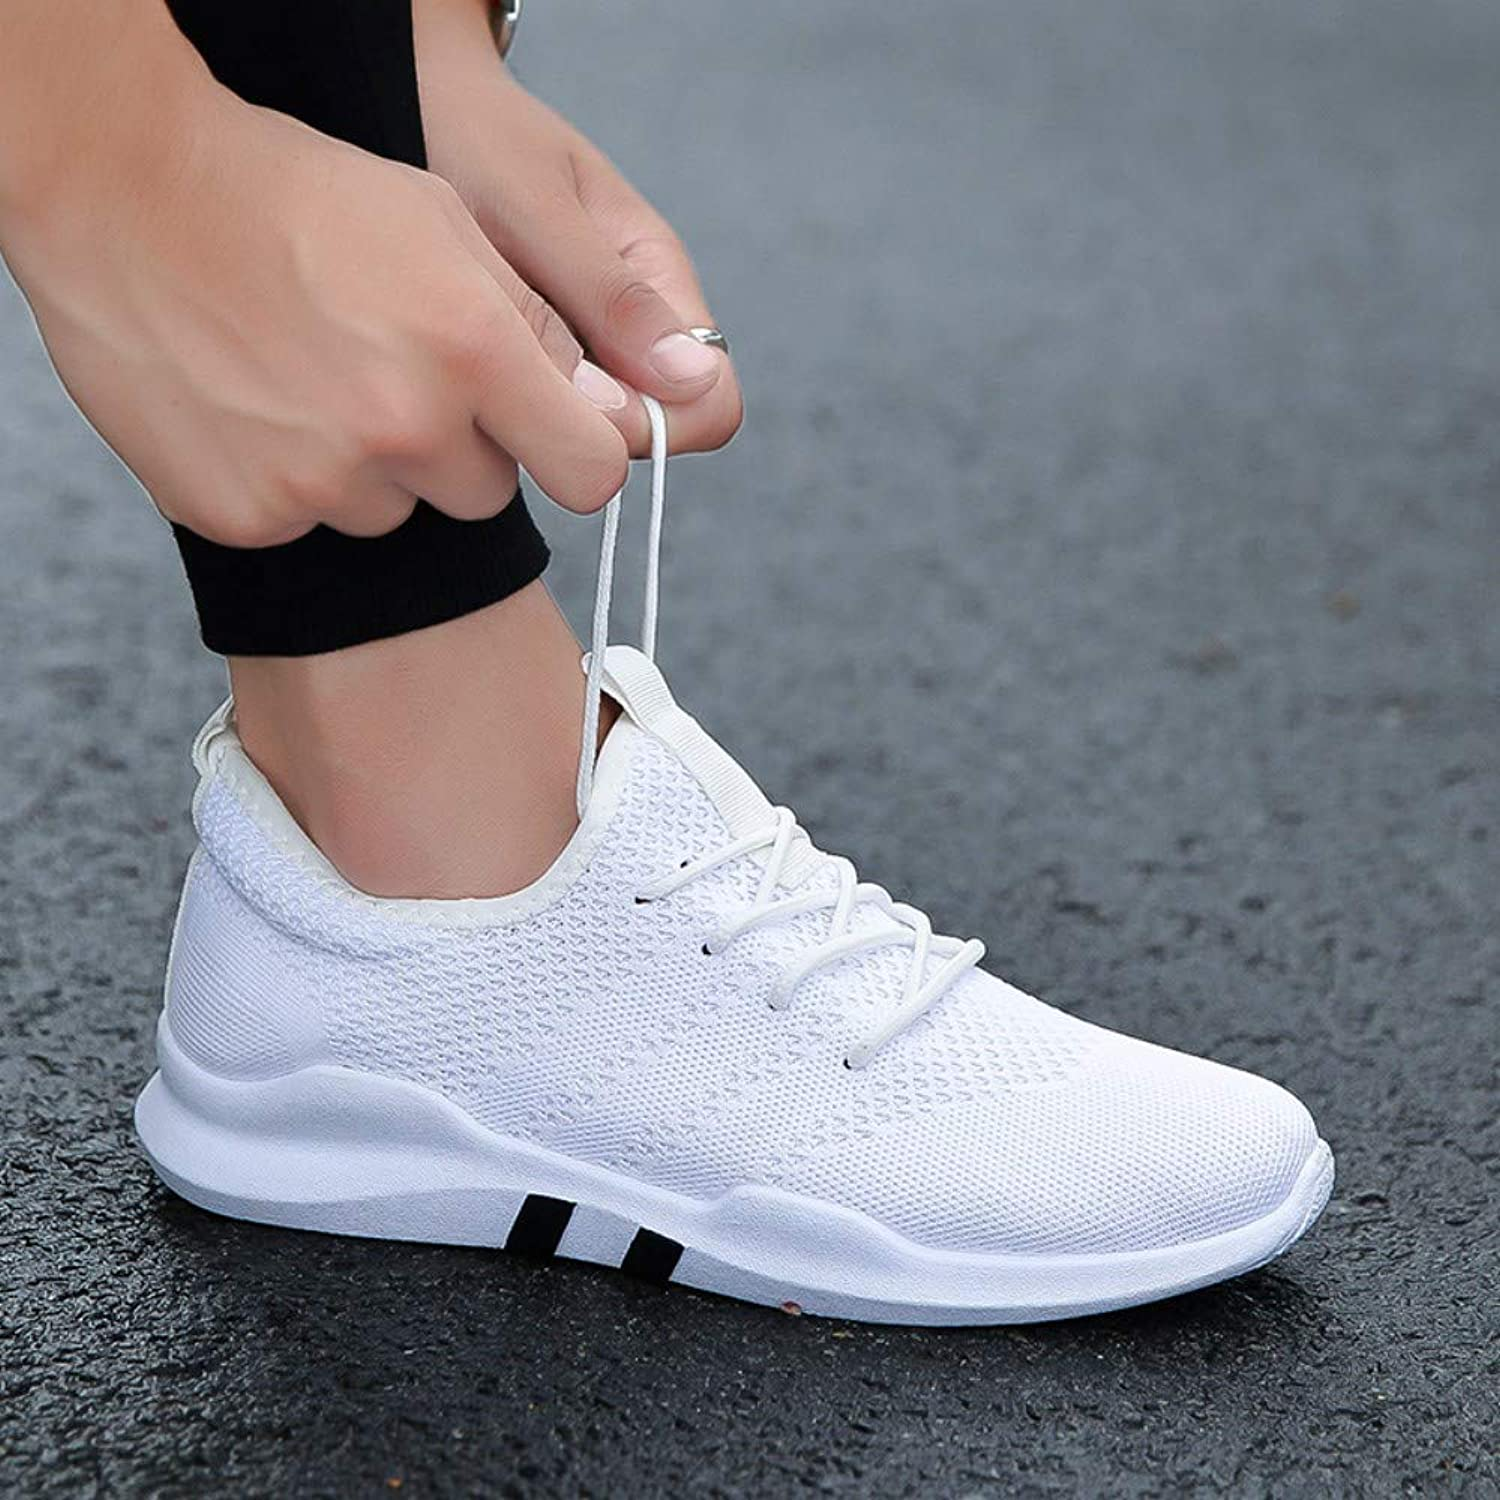 YAYADI Men Running shoes White Sapatos Masculino Men Sneakers Male Athletic Sport shoes Outdoor Lightweight Walking shoes Fitness Breathable